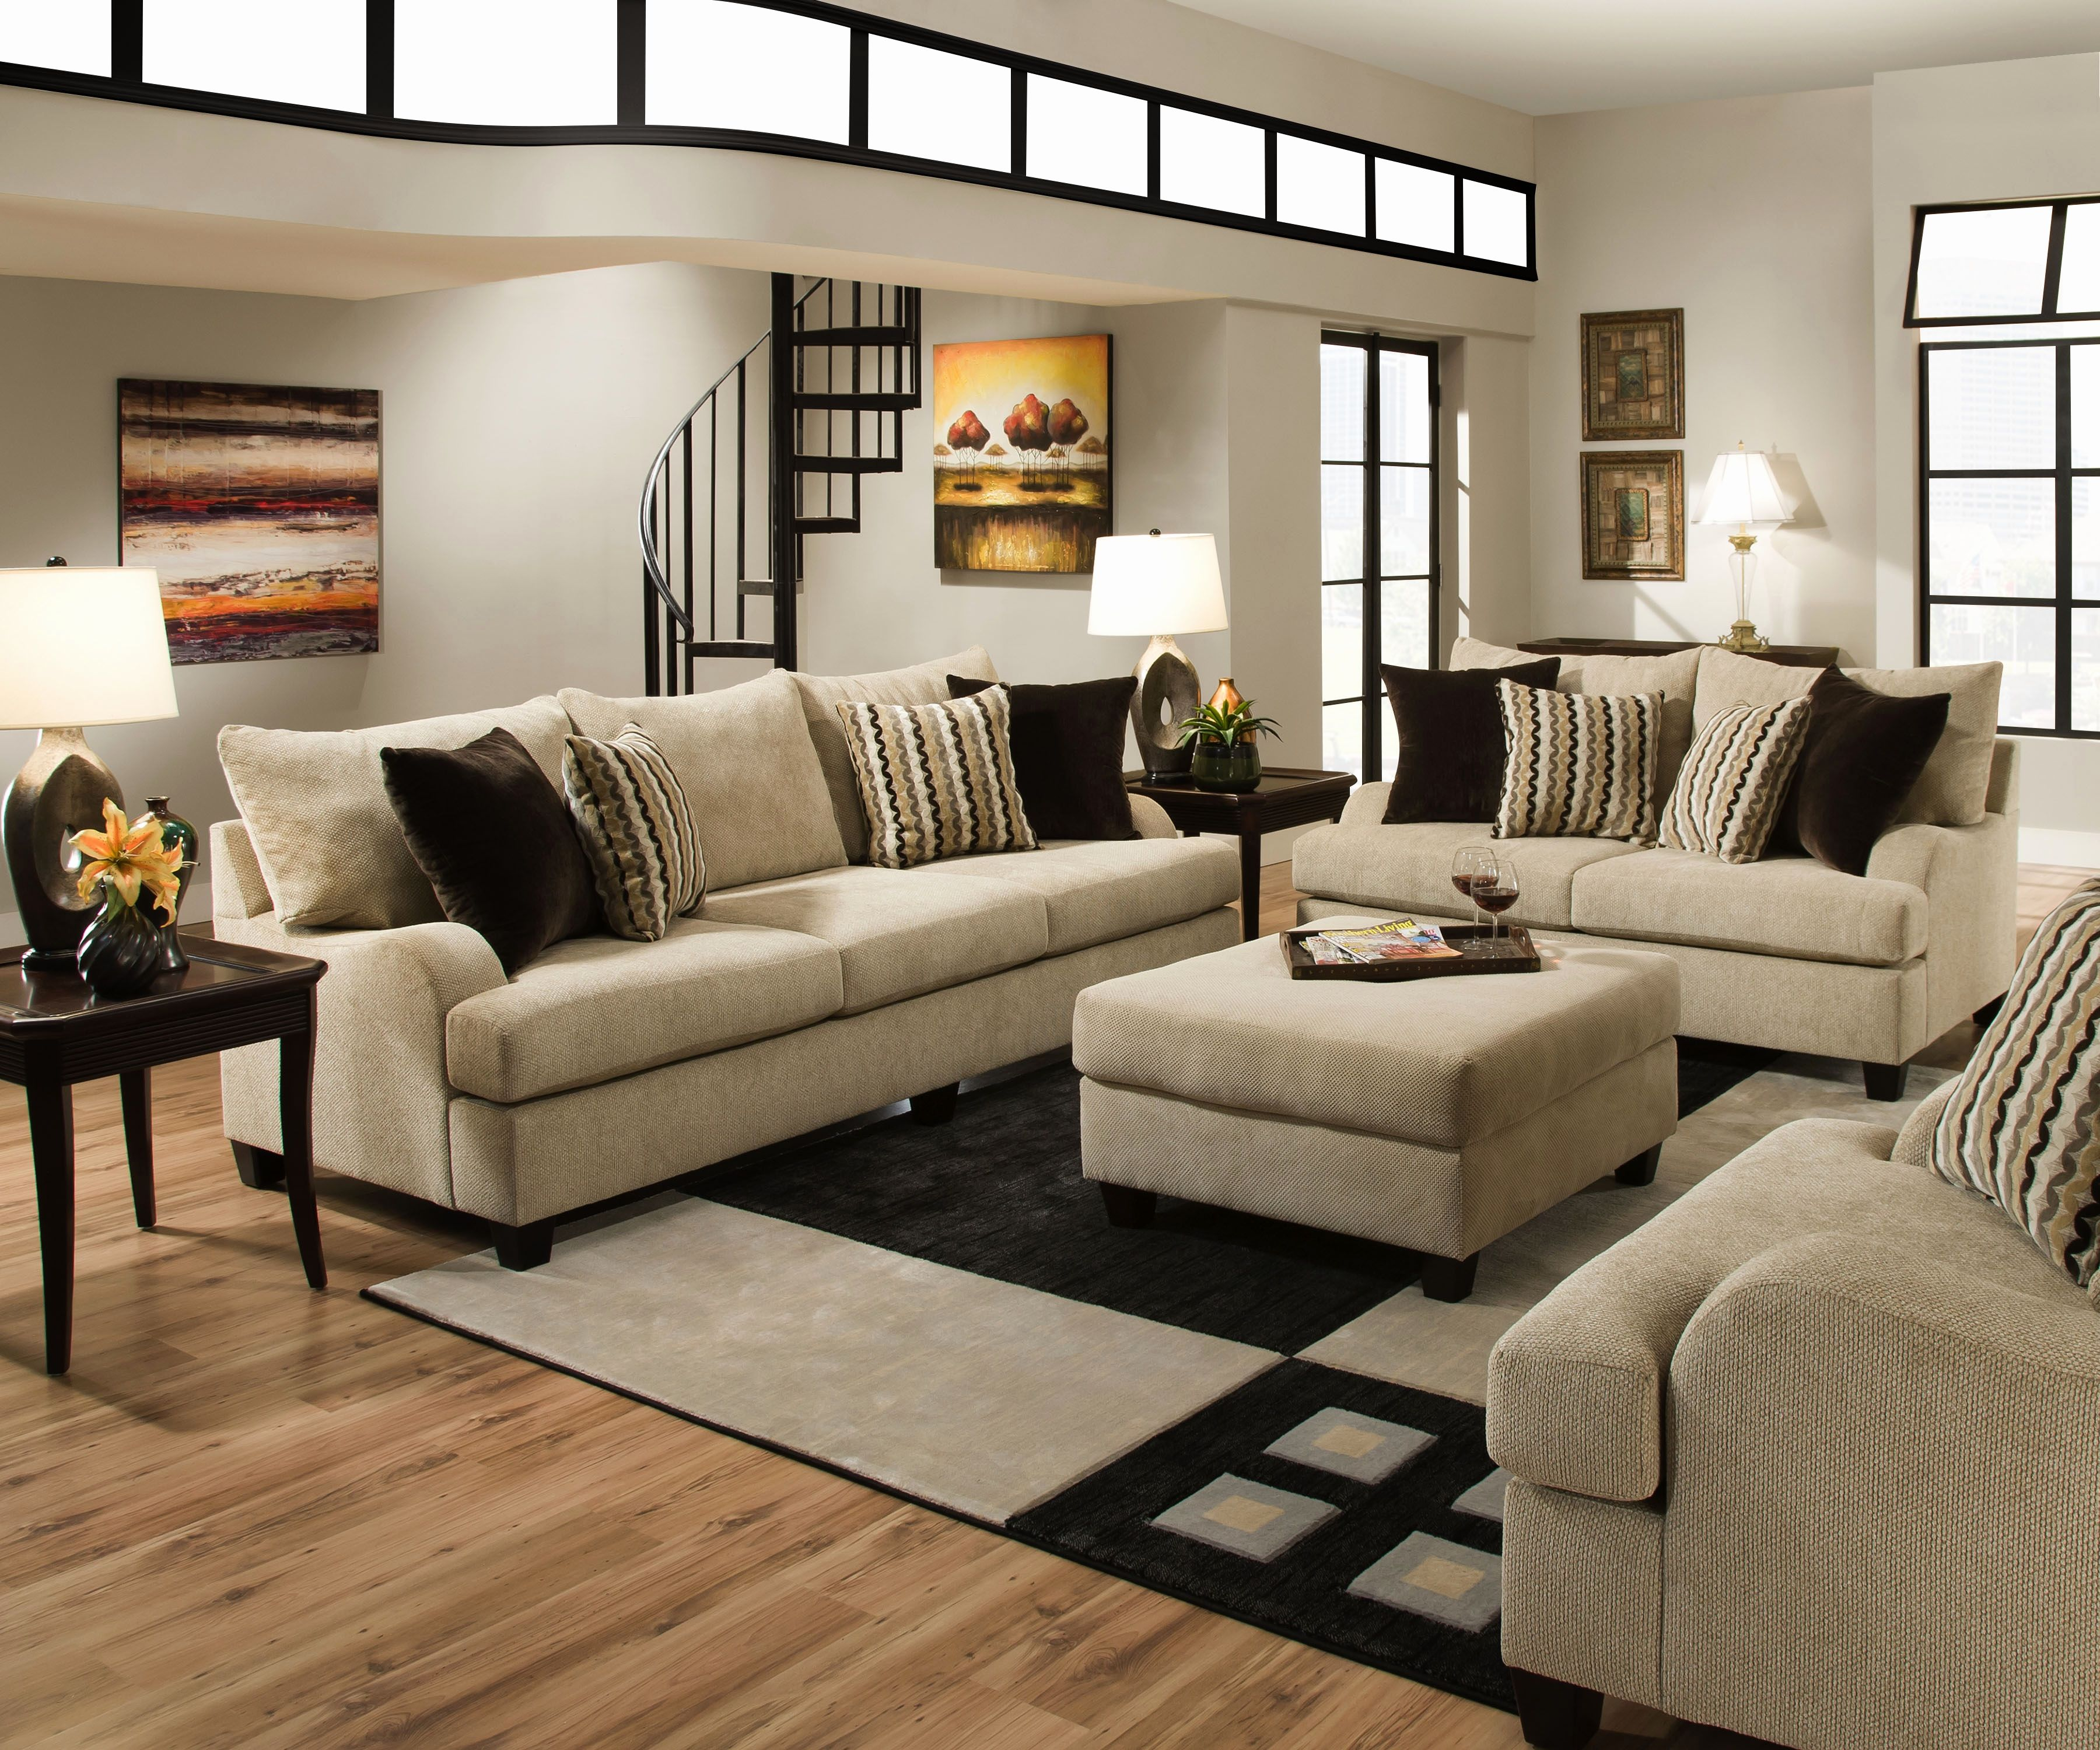 Luxury Sofa Set Designs For Living Room Picture Sofa Set